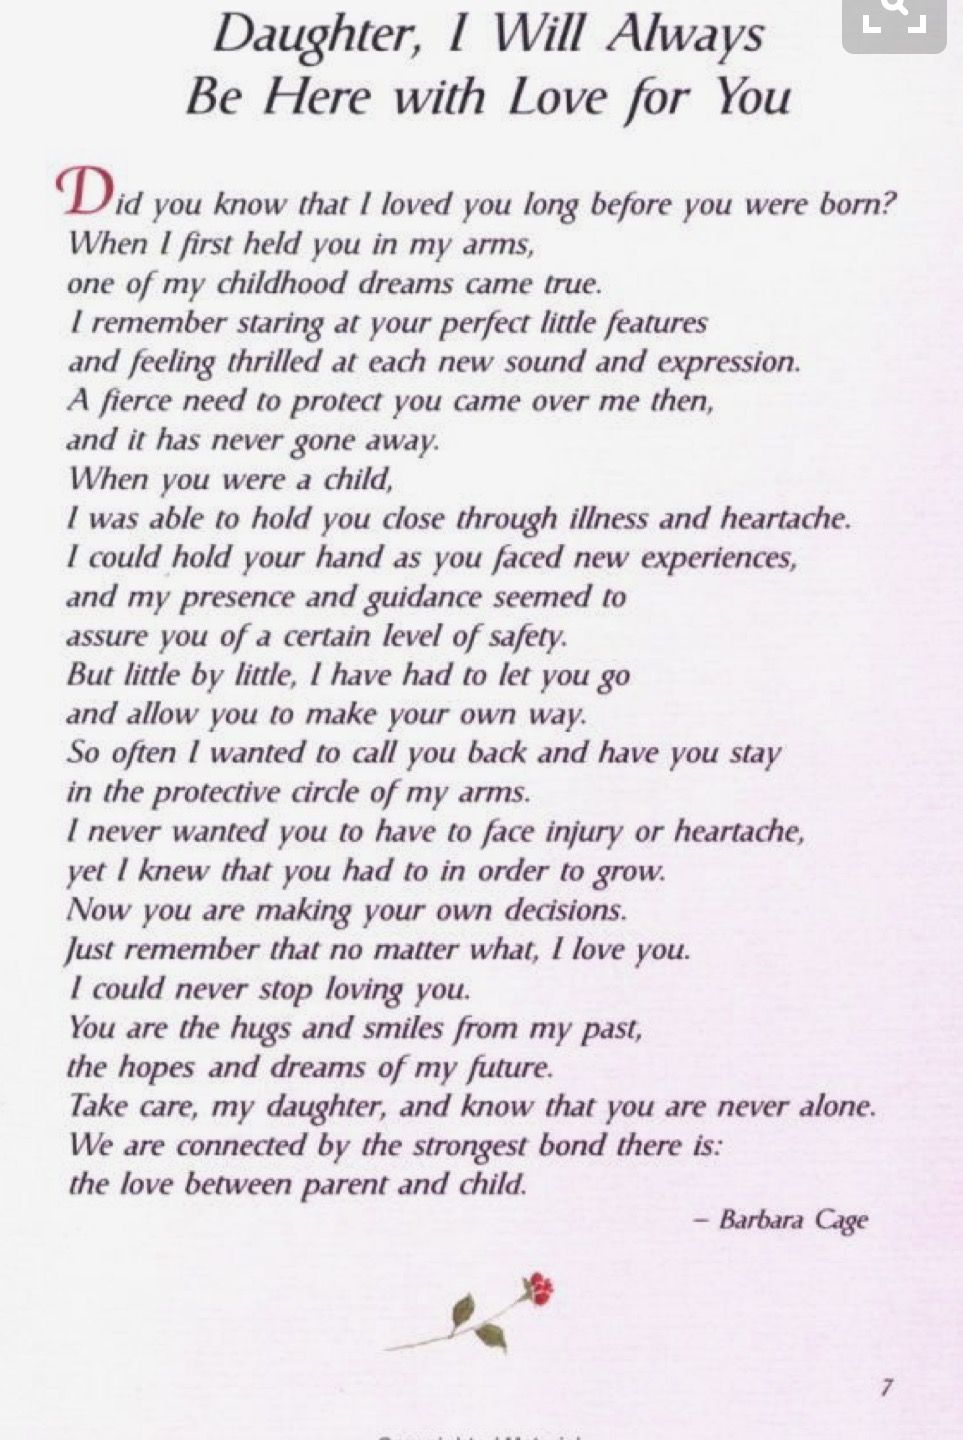 Love You Always Daughter Poem To My Daughter My Daughter Quotes Wedding Day Quotes